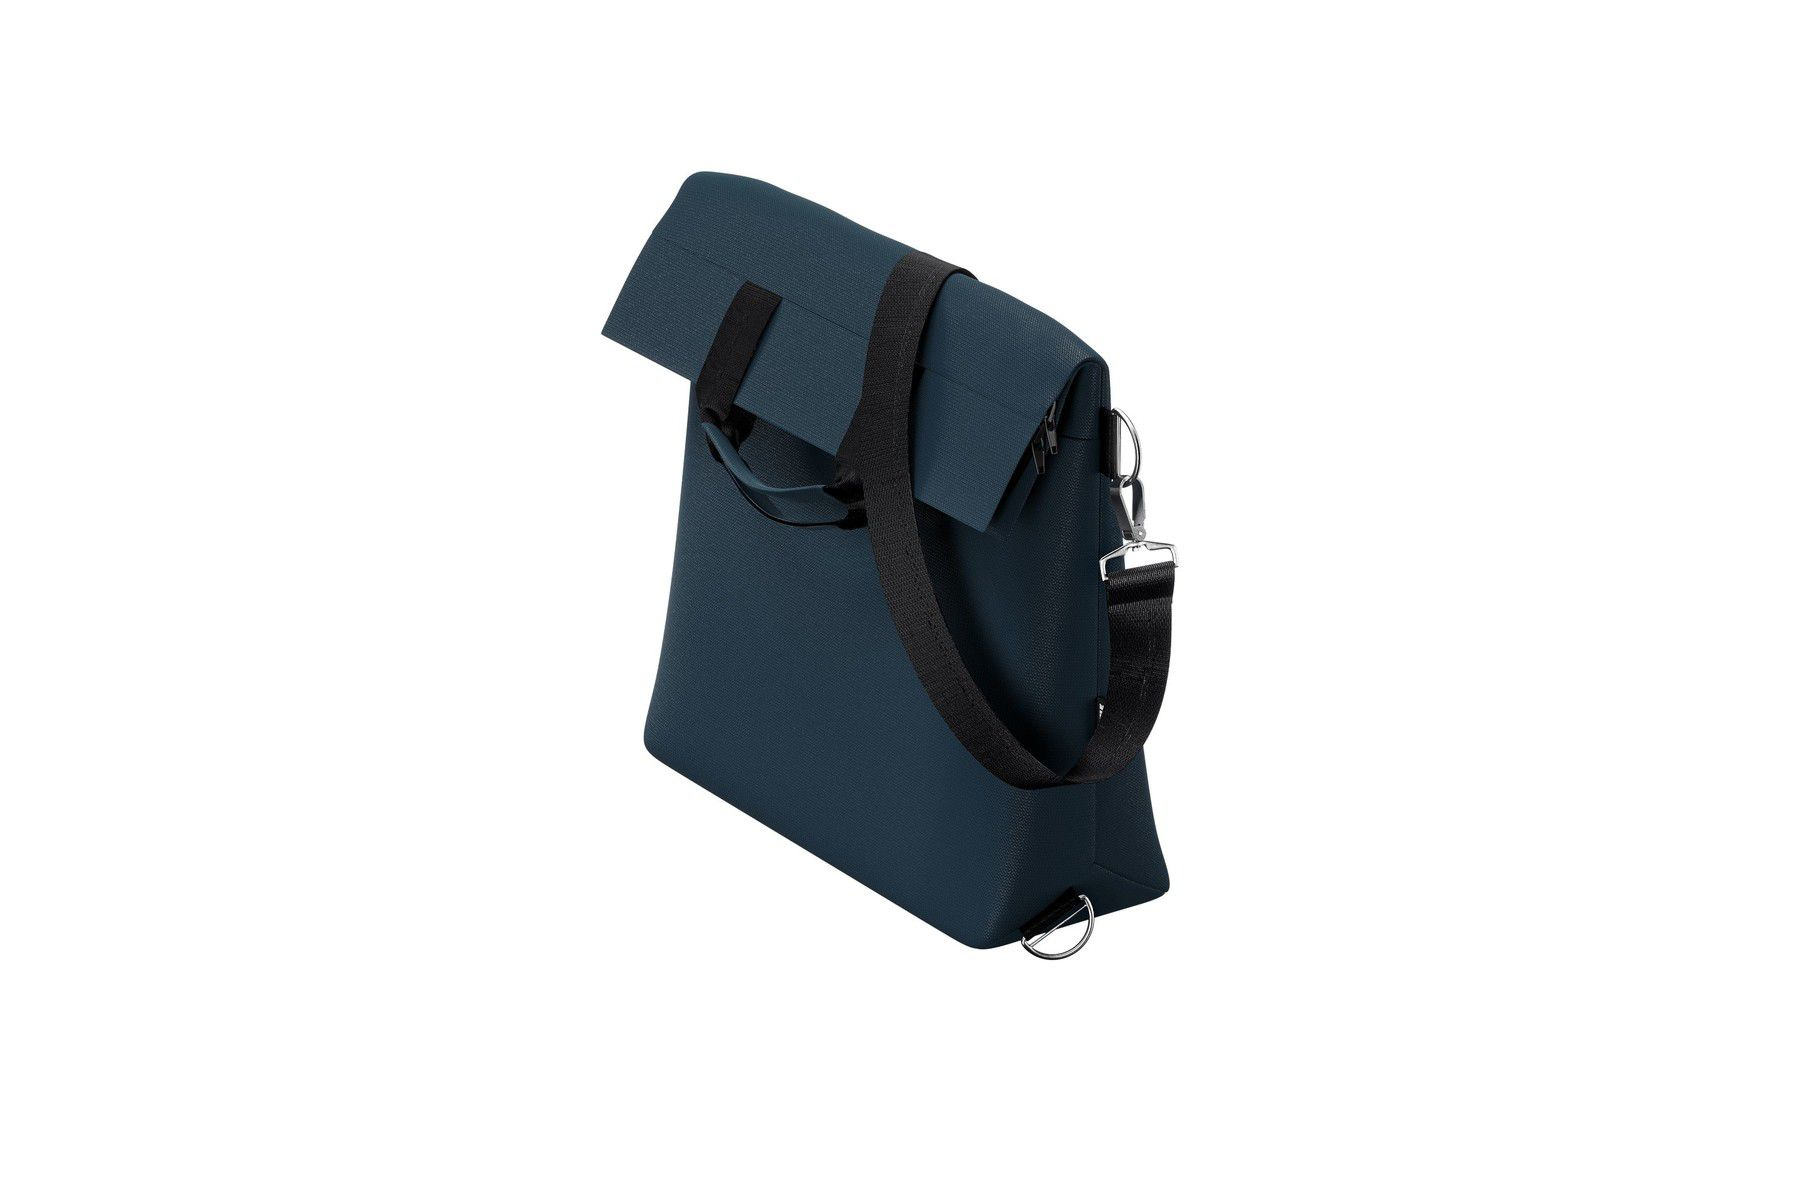 BOLSA COM TROCADOR -  CHANGING BAG - NAVY BLUE - THULE